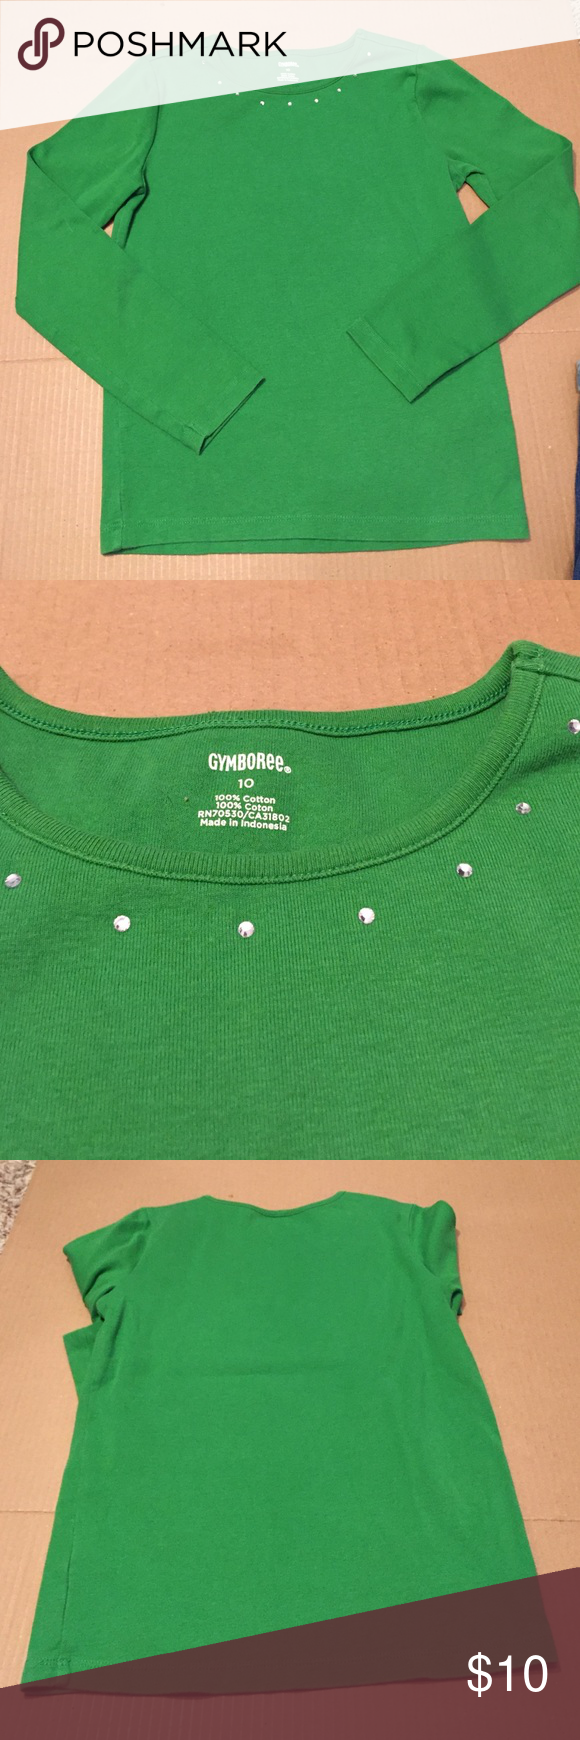 💜size 10 Gymboree shirt Gently pre owned.  🌻prices are negotiable - please feel free to make me an offer!  I also give great discounts when you make offers on bundled purchases!! 🌟 Gymboree Shirts & Tops Tees - Long Sleeve